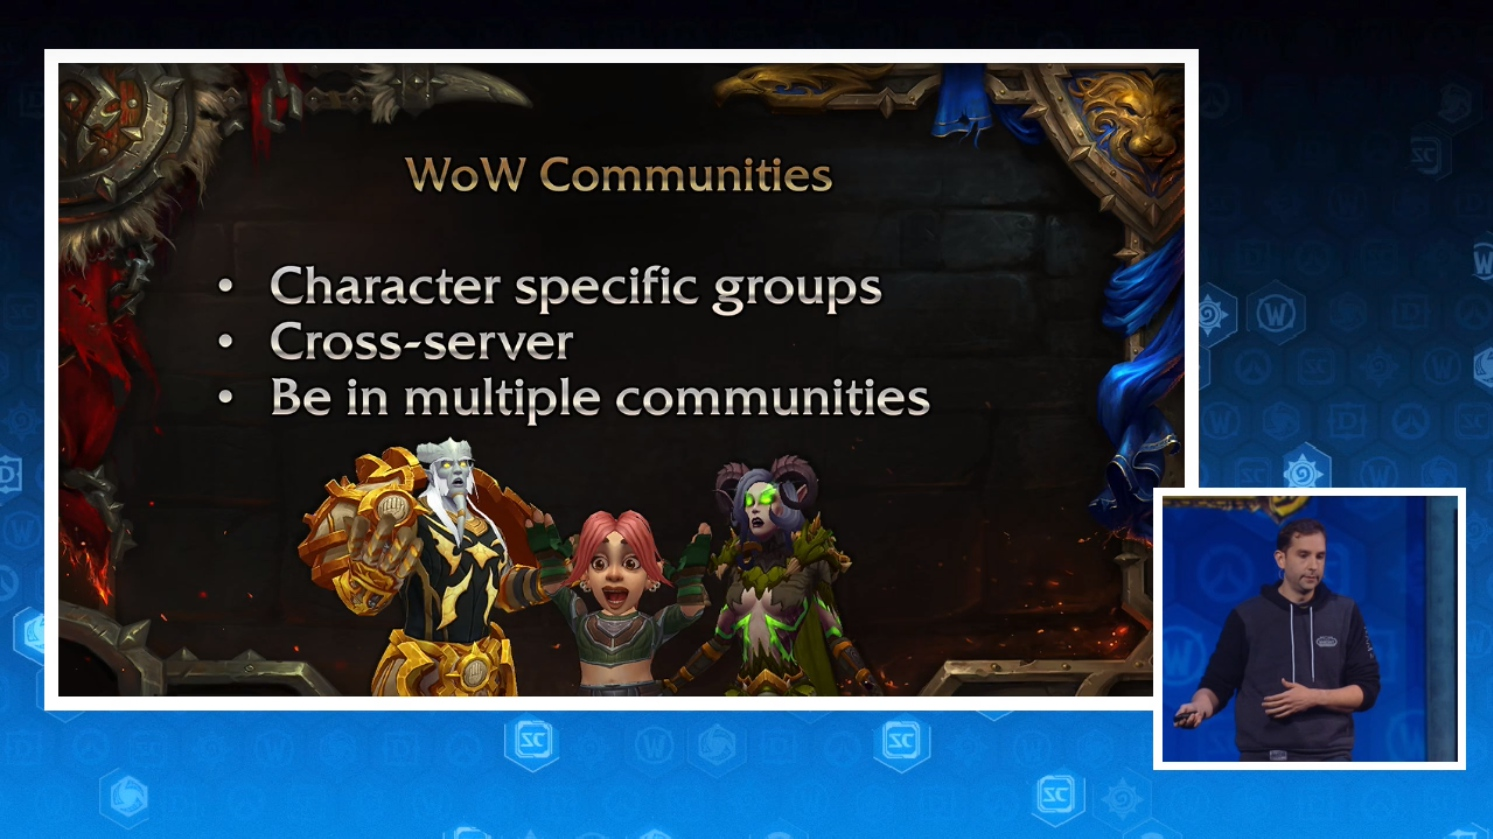 I'm confused, are we going to have cross-server guilds now?